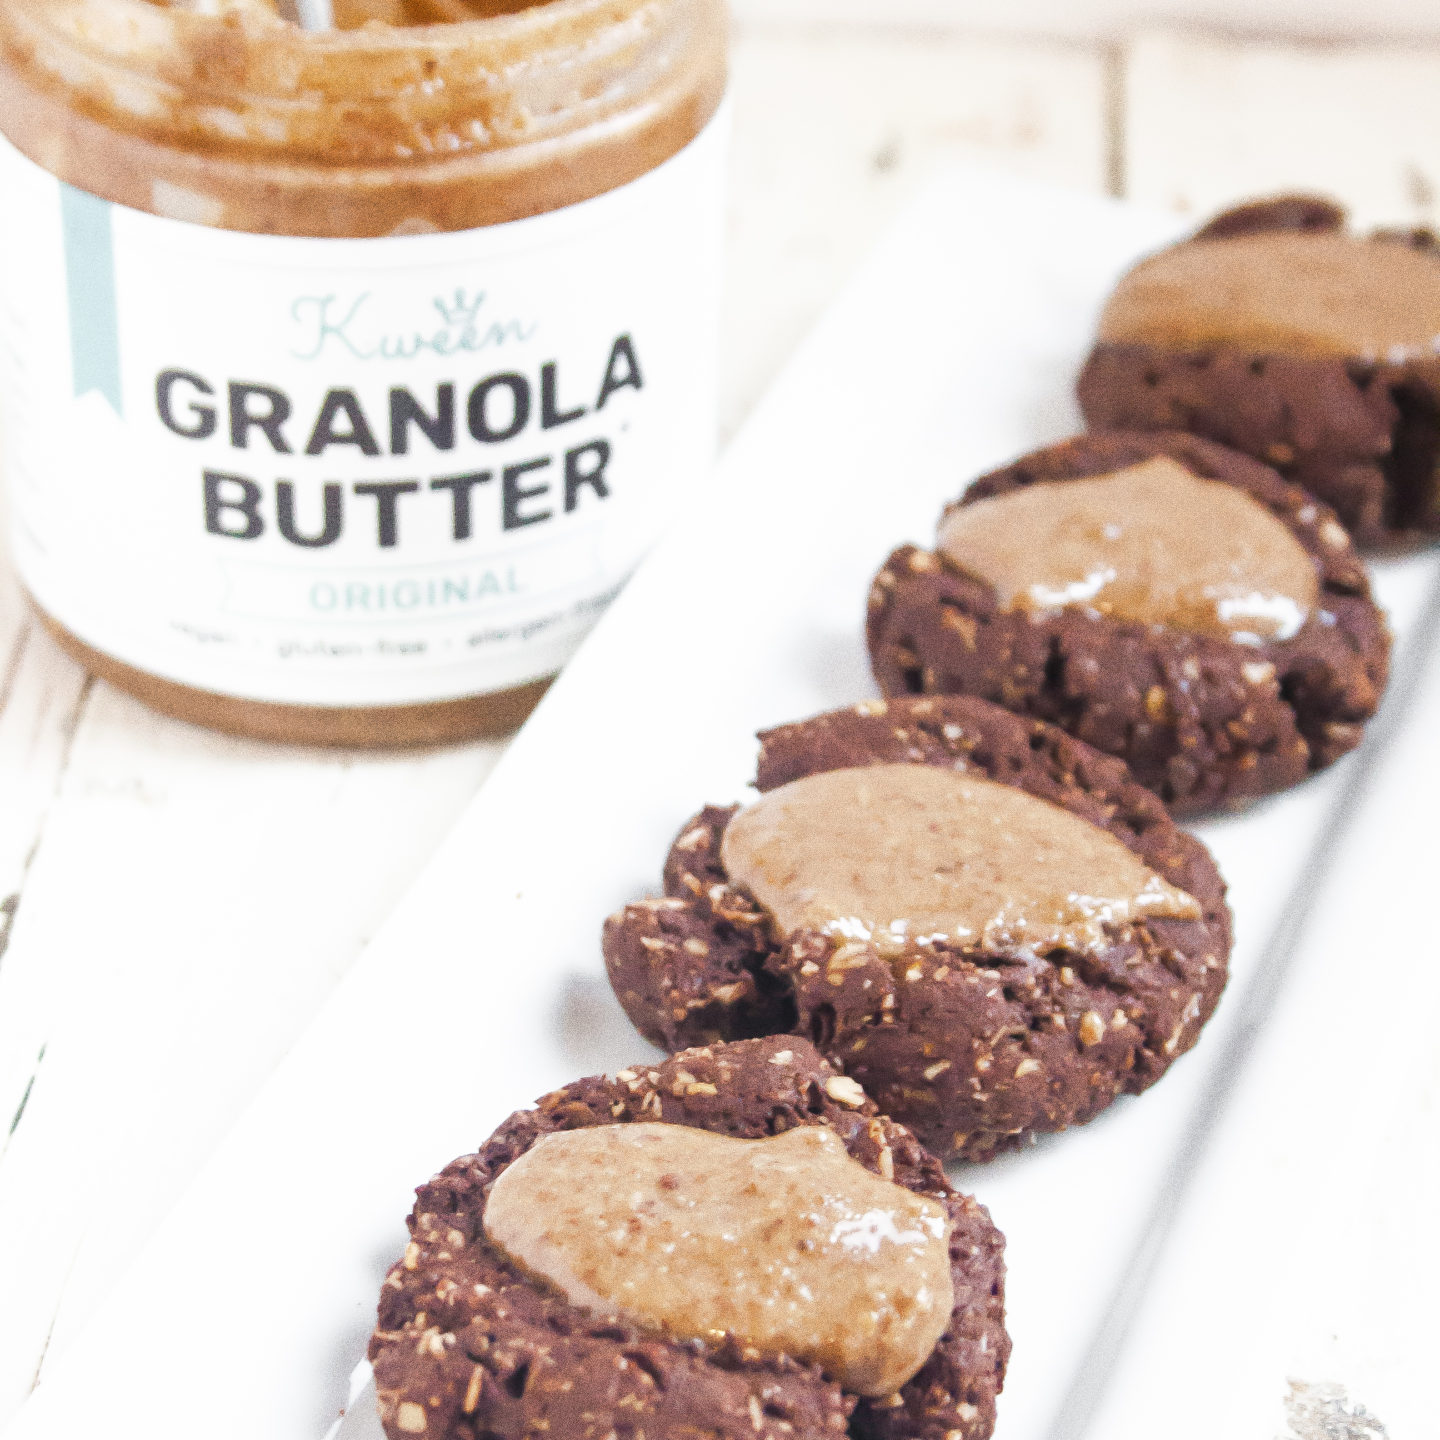 Original Granola Butter Thumbprint Cookies